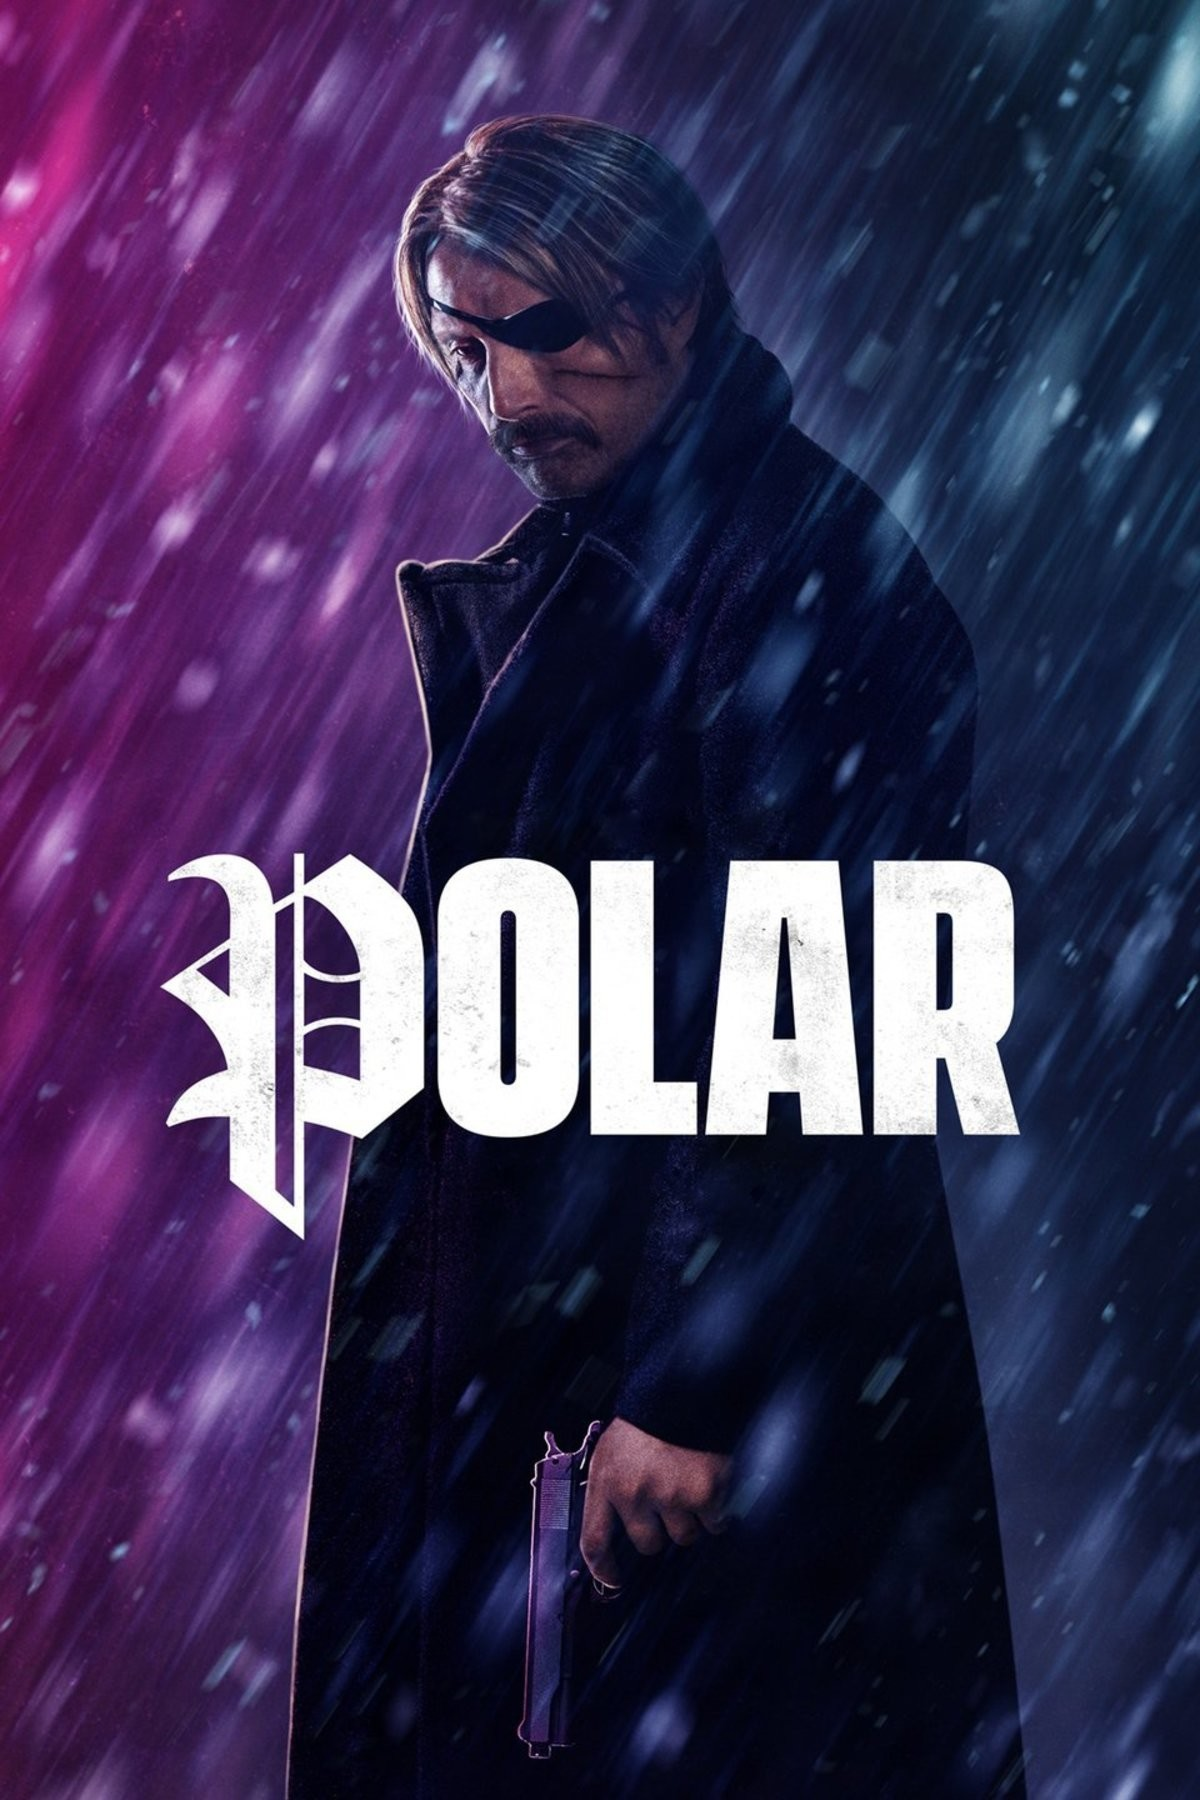 Netflix Polar. I enjoyed it, so I suggest giving it a watch. Got an impressive cast to say the least.